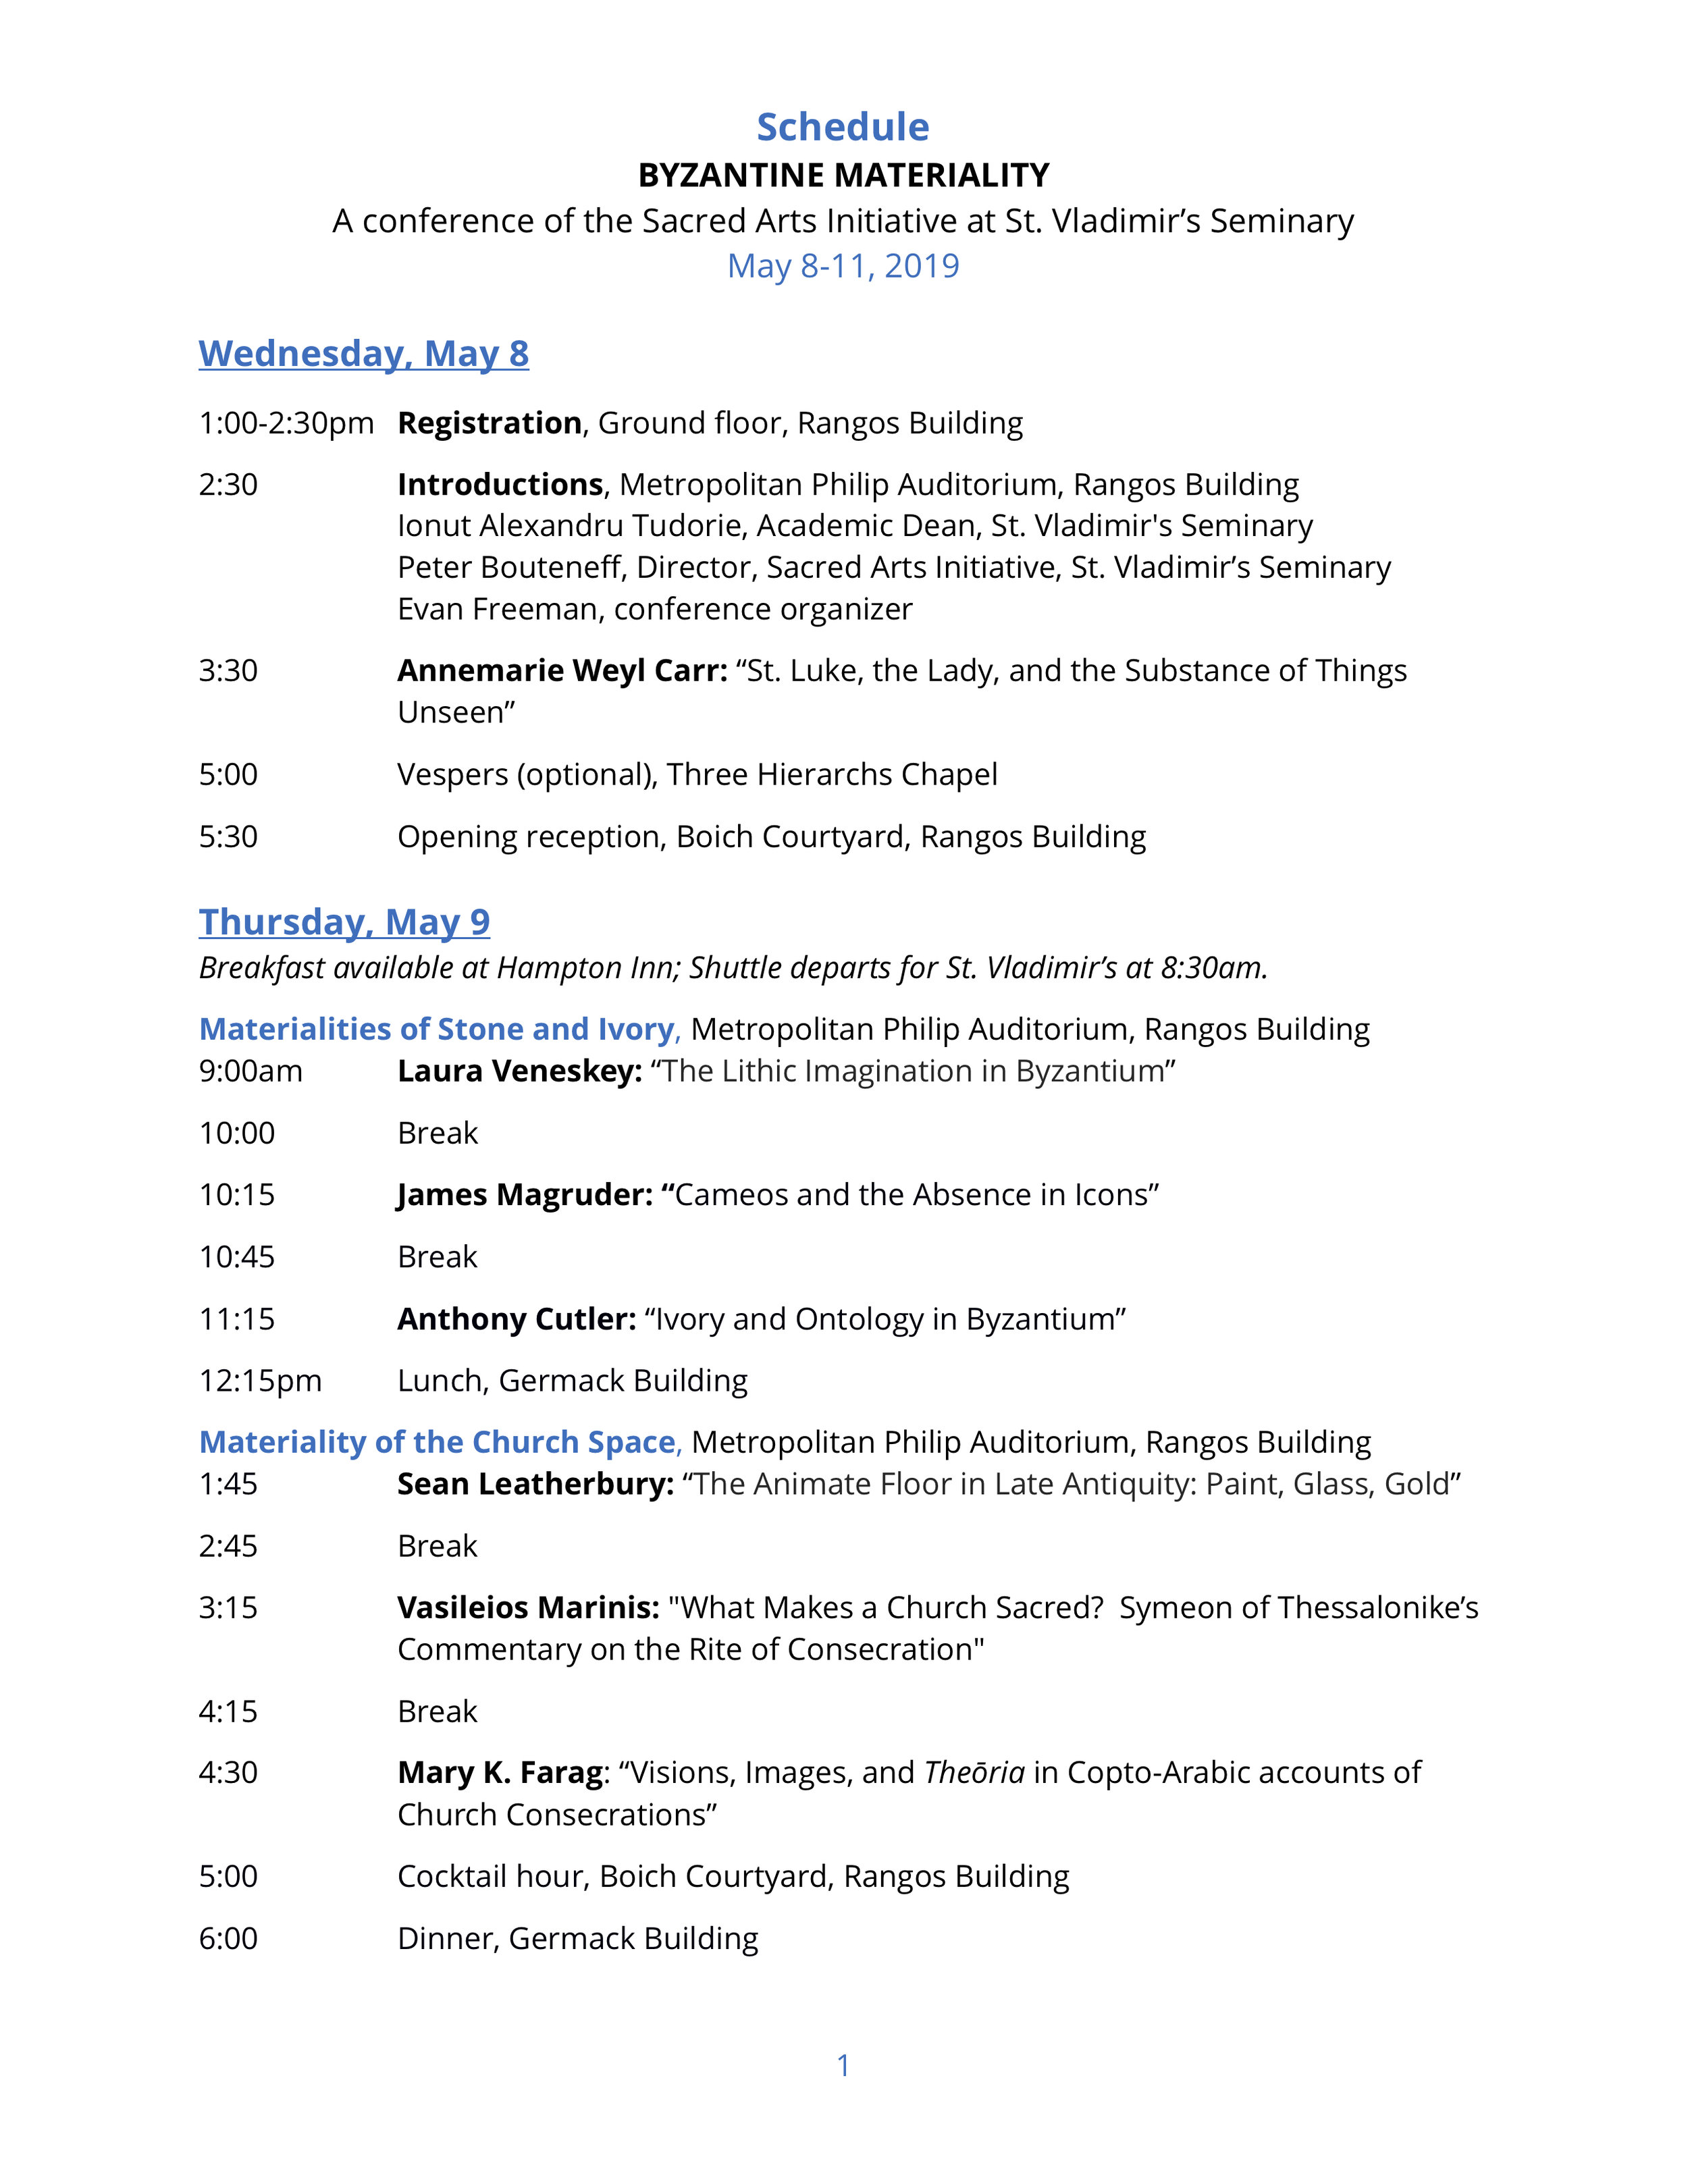 Byzantine Materiality Conference Schedule.jpg